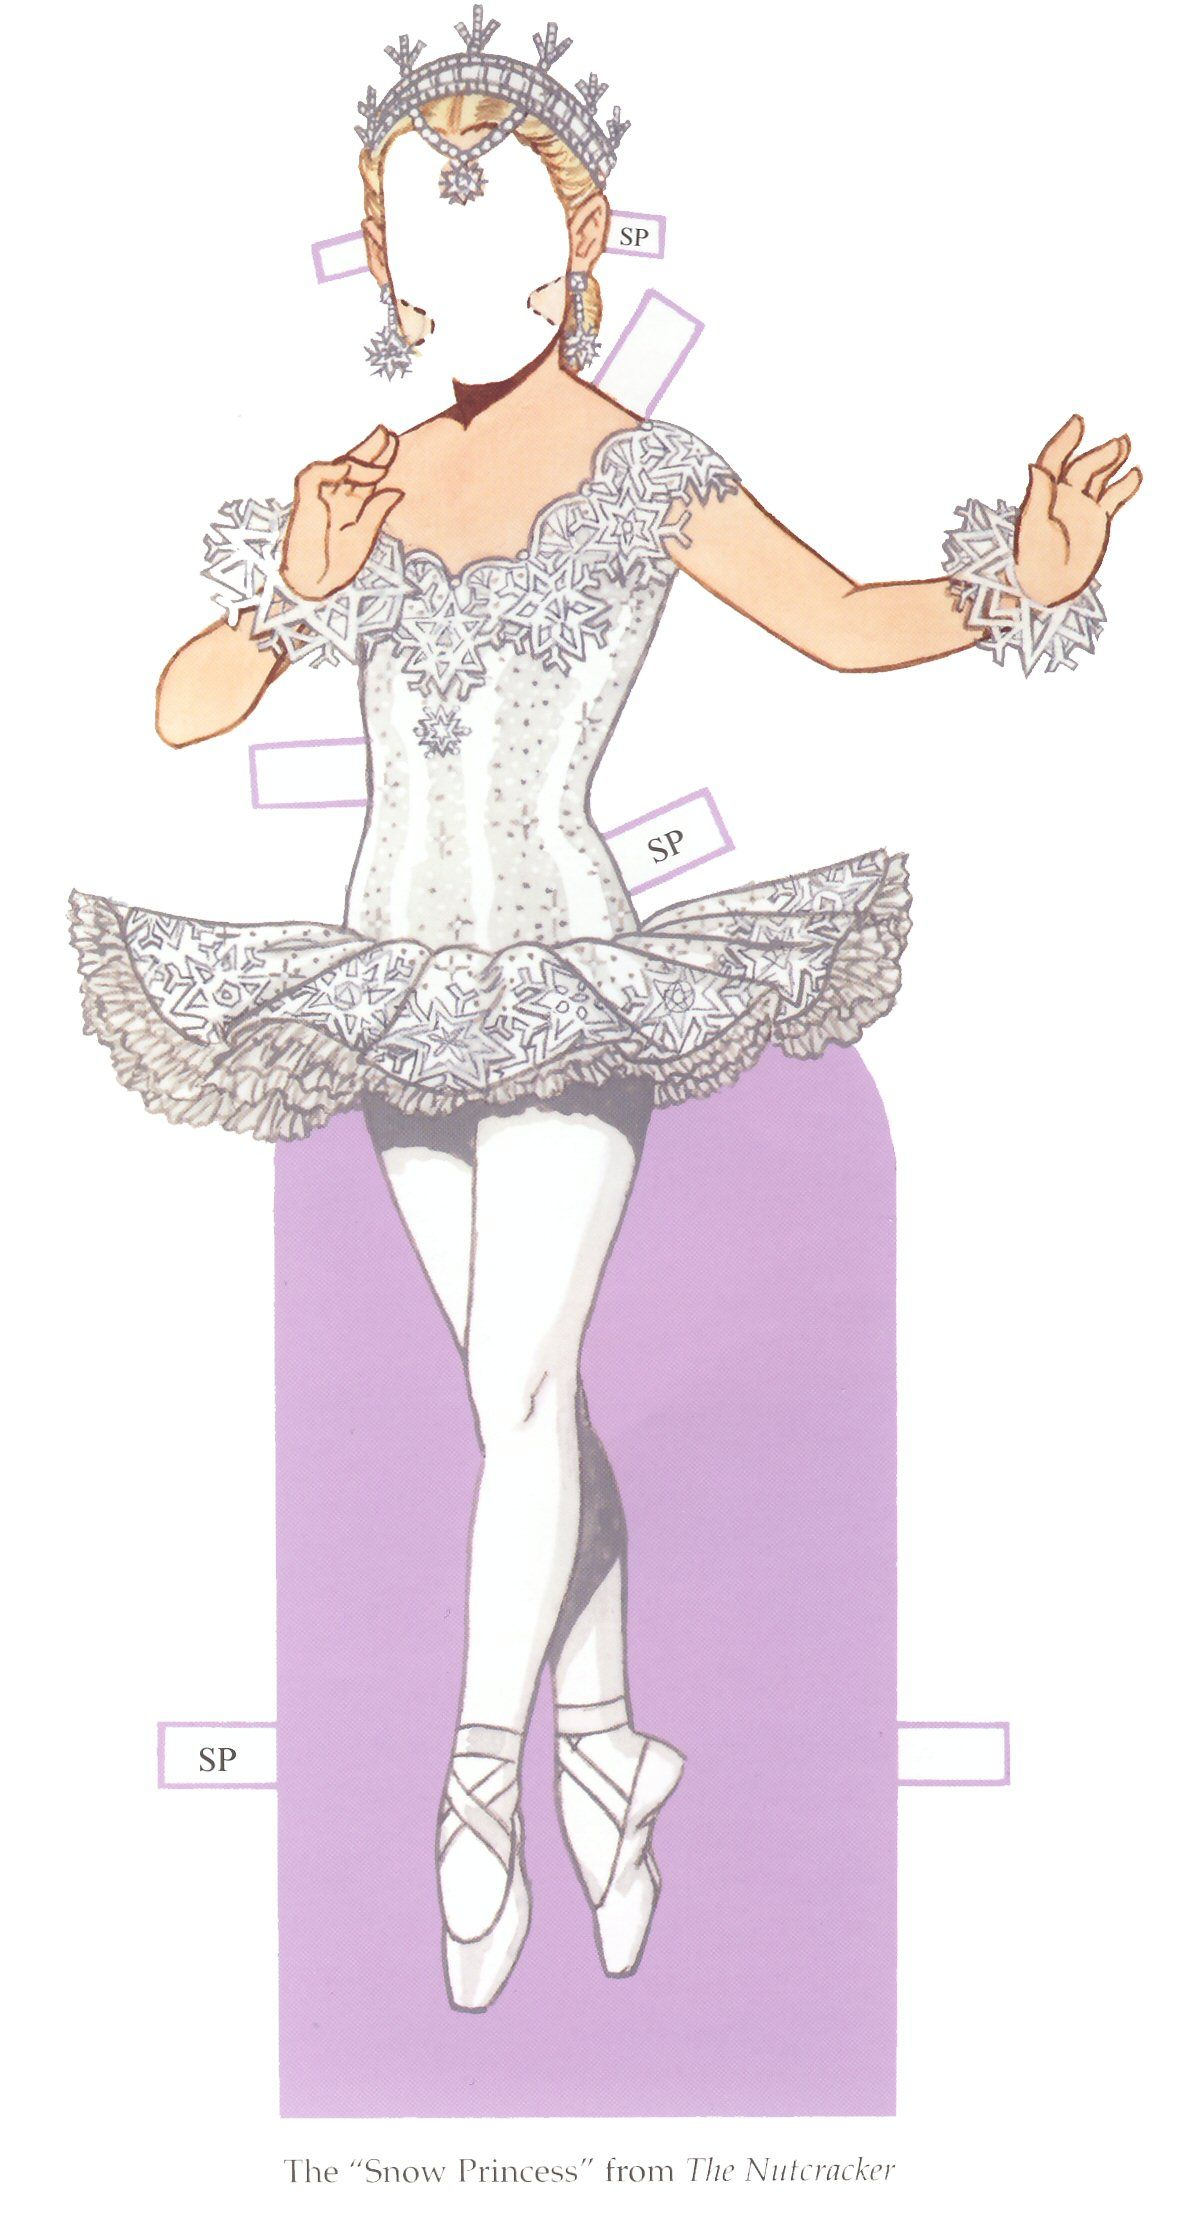 """""""Ballet Princesses Paper Doll"""" by Tom Tierney; Dover Publications (1 of 8)"""